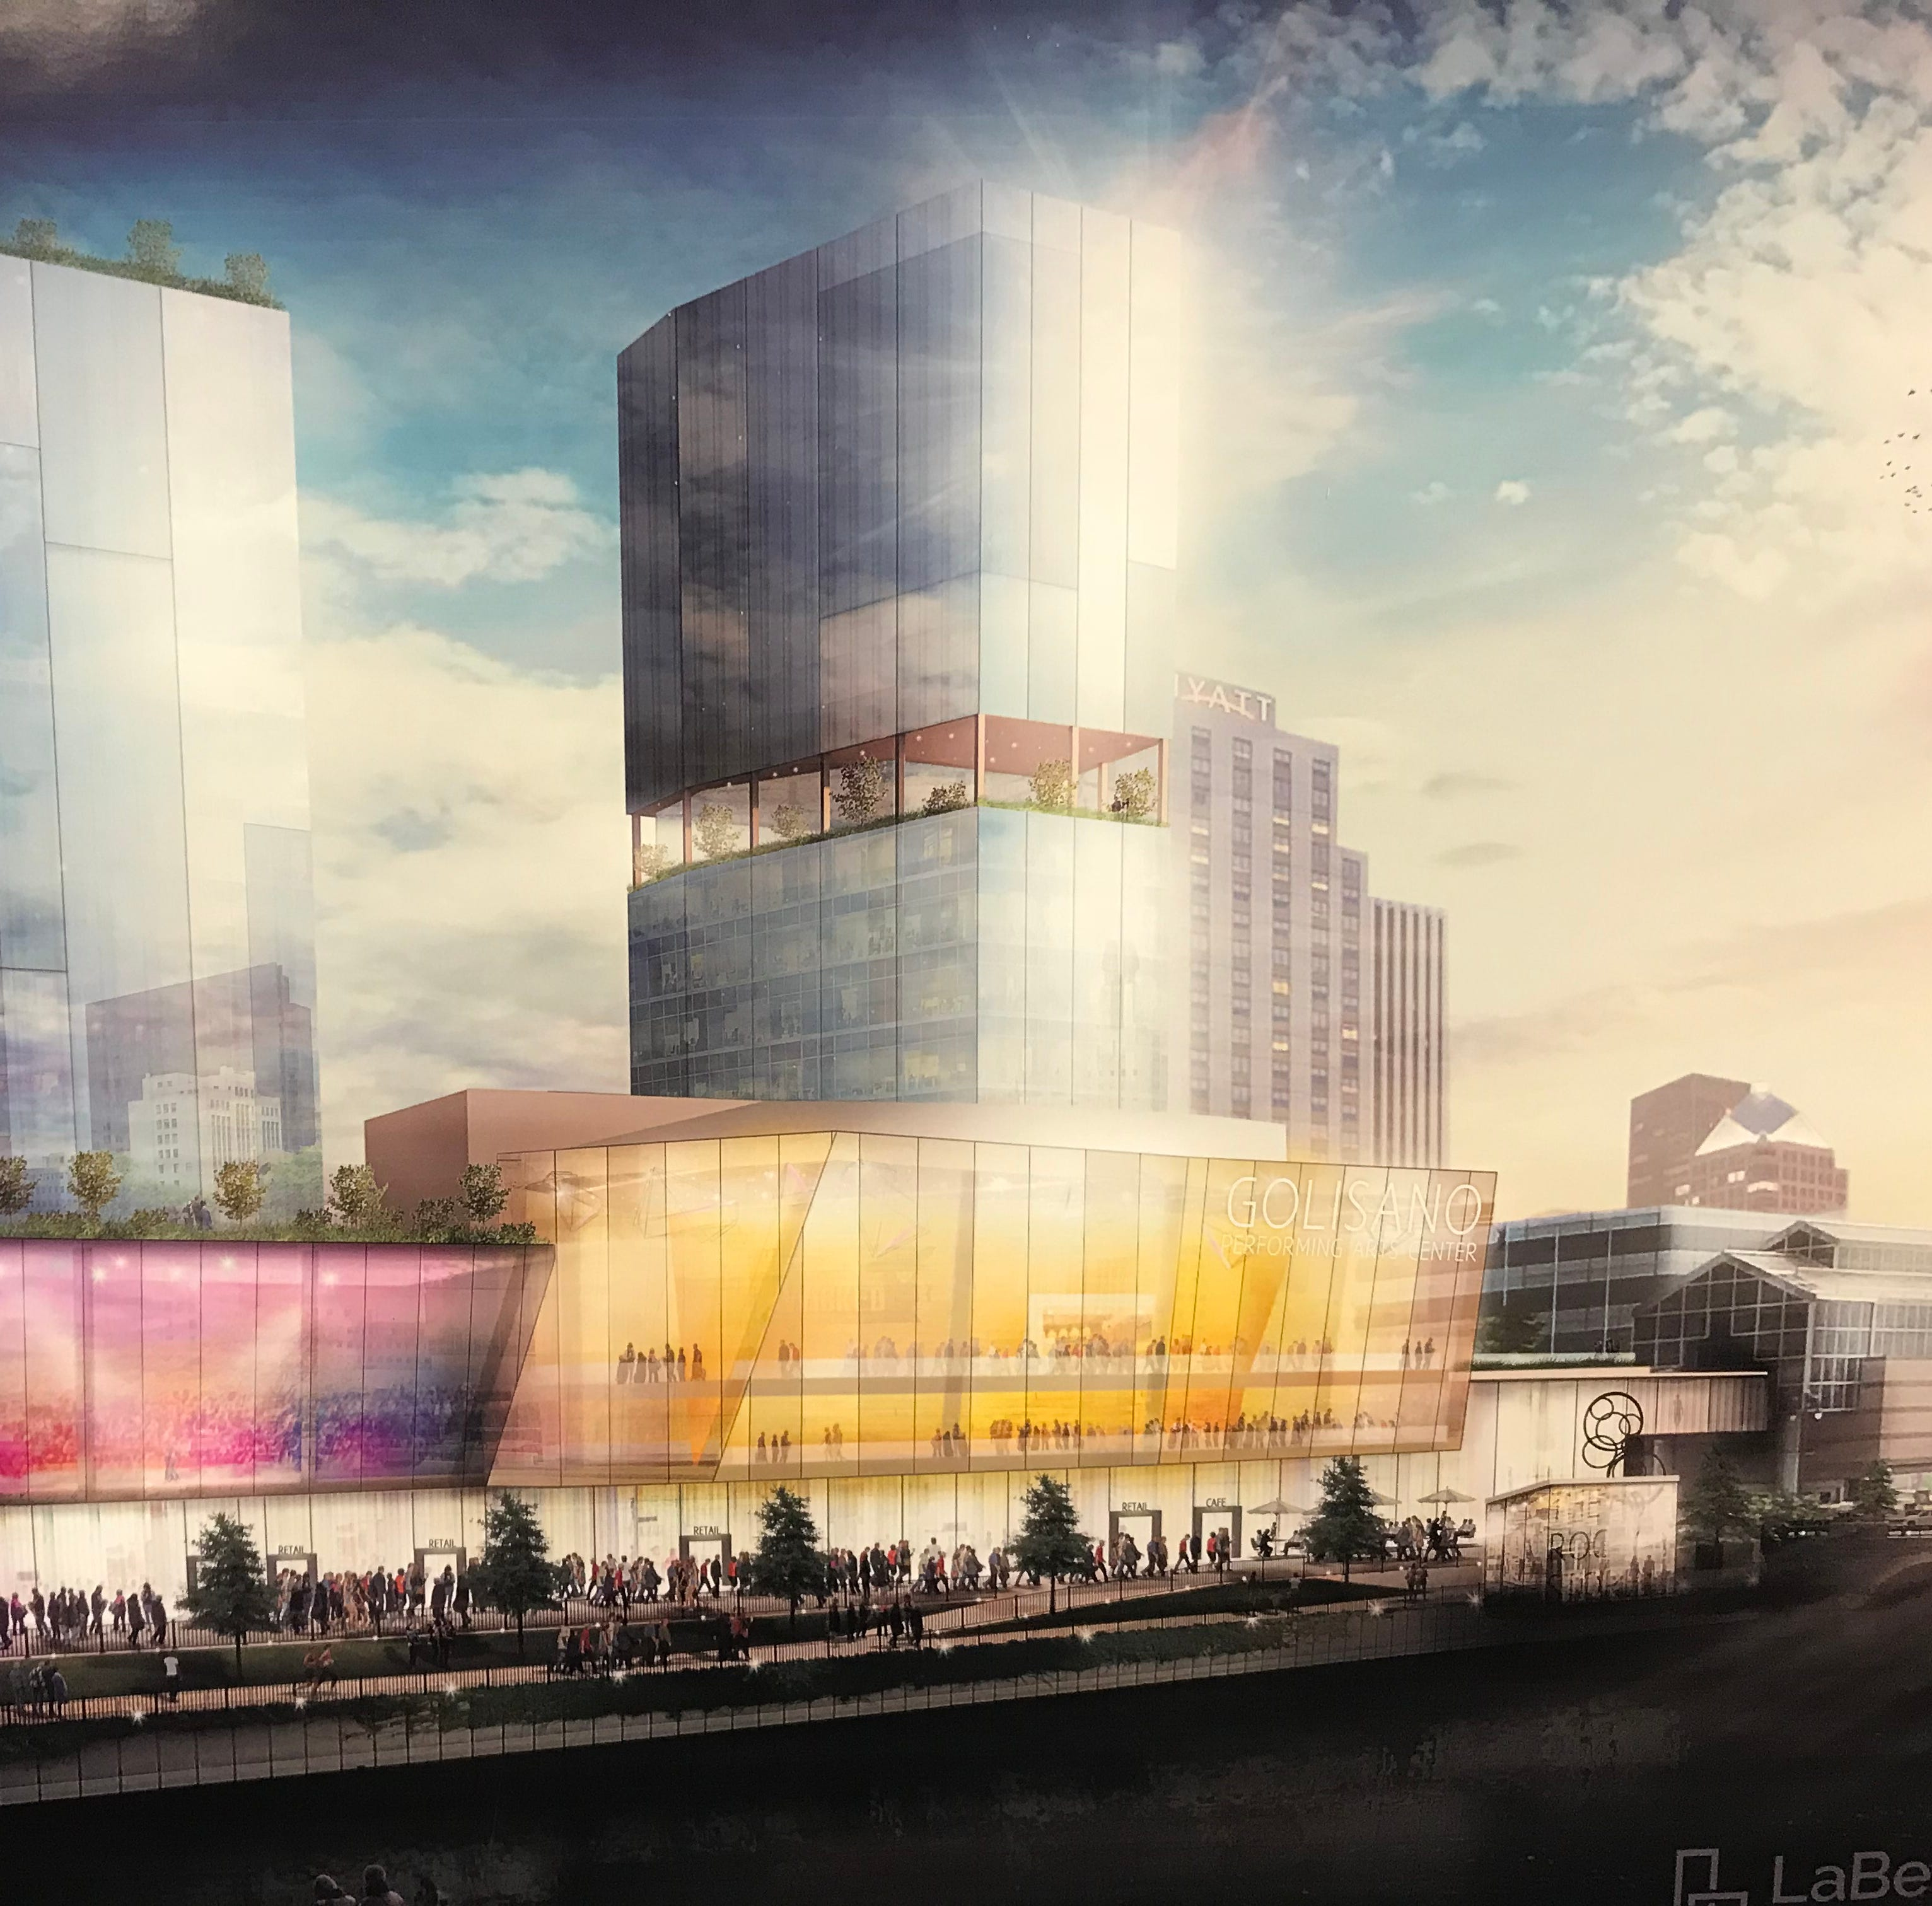 Proposed riverside theater site part of $250M high-rise hotel and retail complex